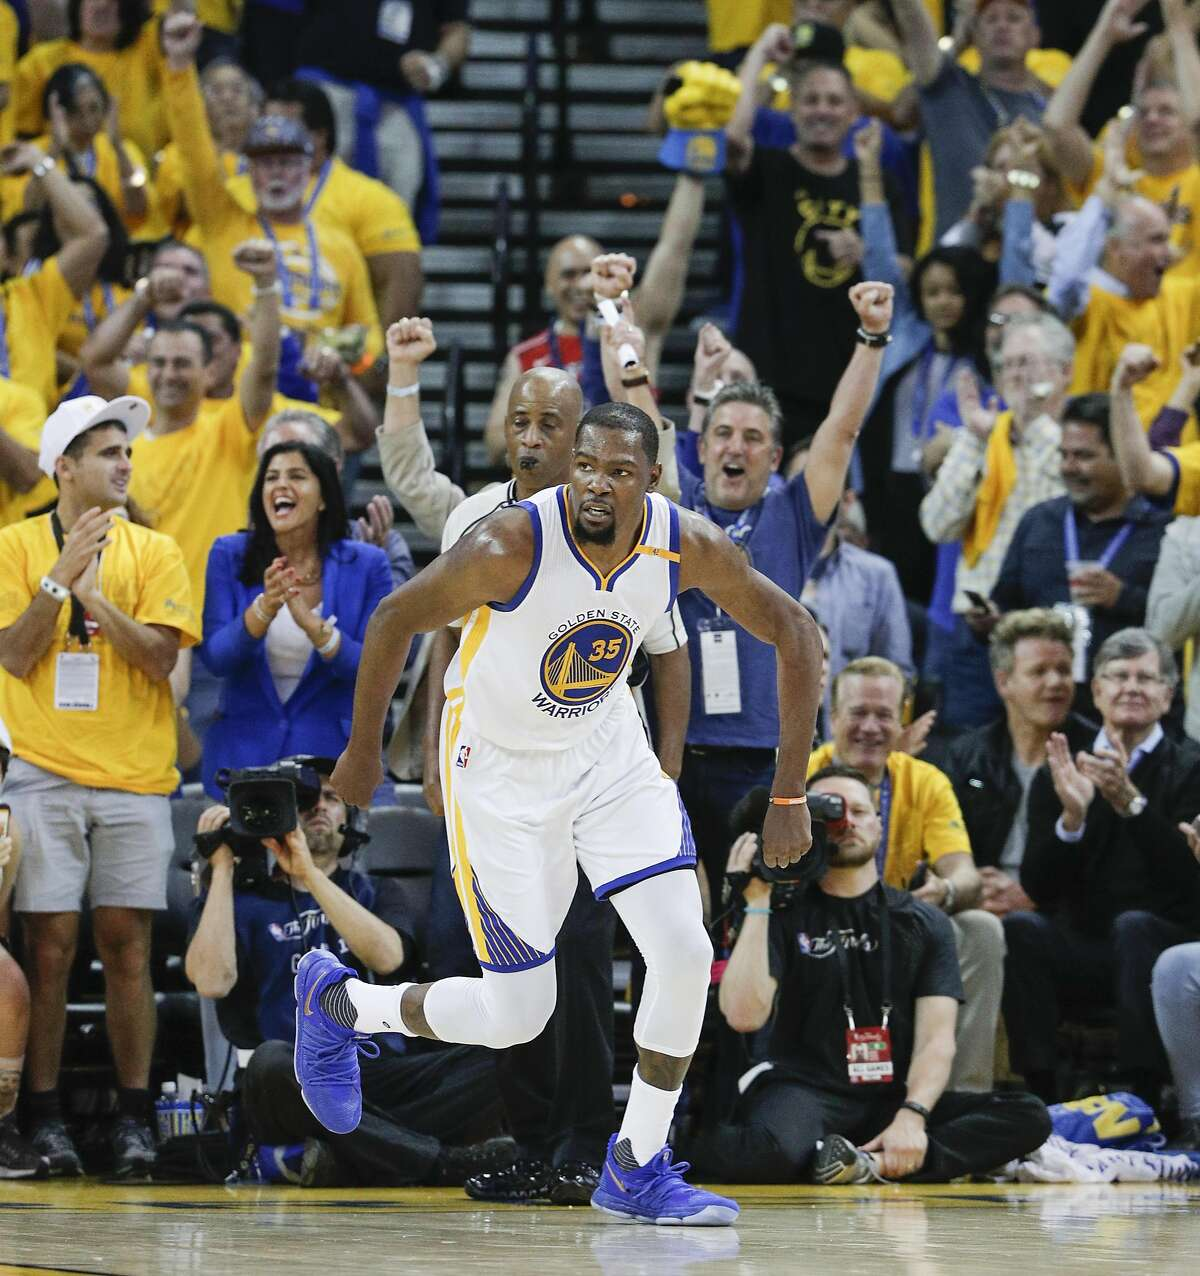 Golden State Warriors' Kevin Durant heads upcourt in the second quarter during Game 1 of the 2017 NBA Finals at Oracle Arena on Thursday, June 1, 2017 in Oakland, Calif.